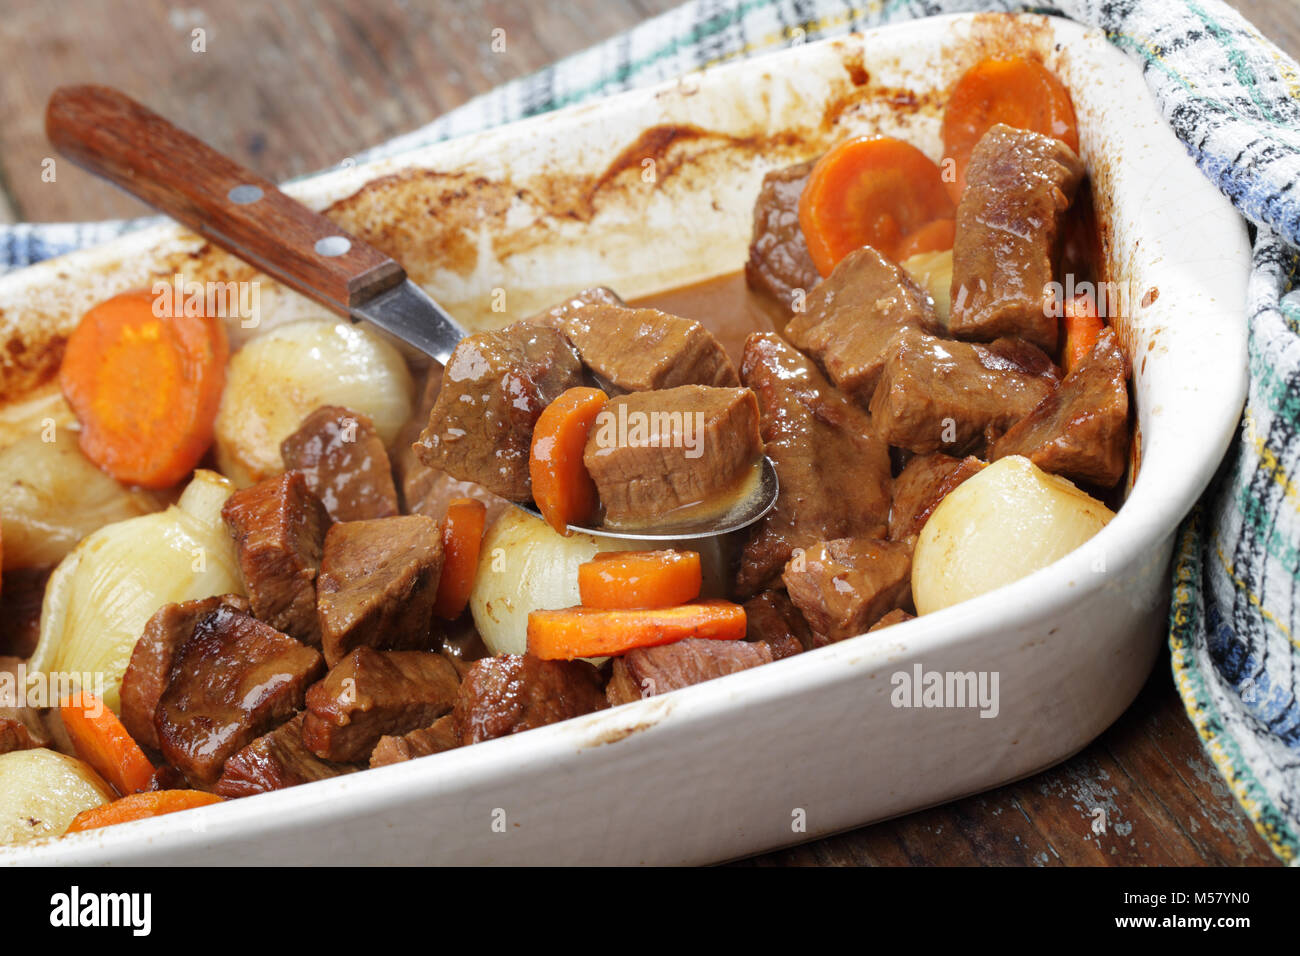 Beef bourguignon in white casserole on a rustic table - Stock Image